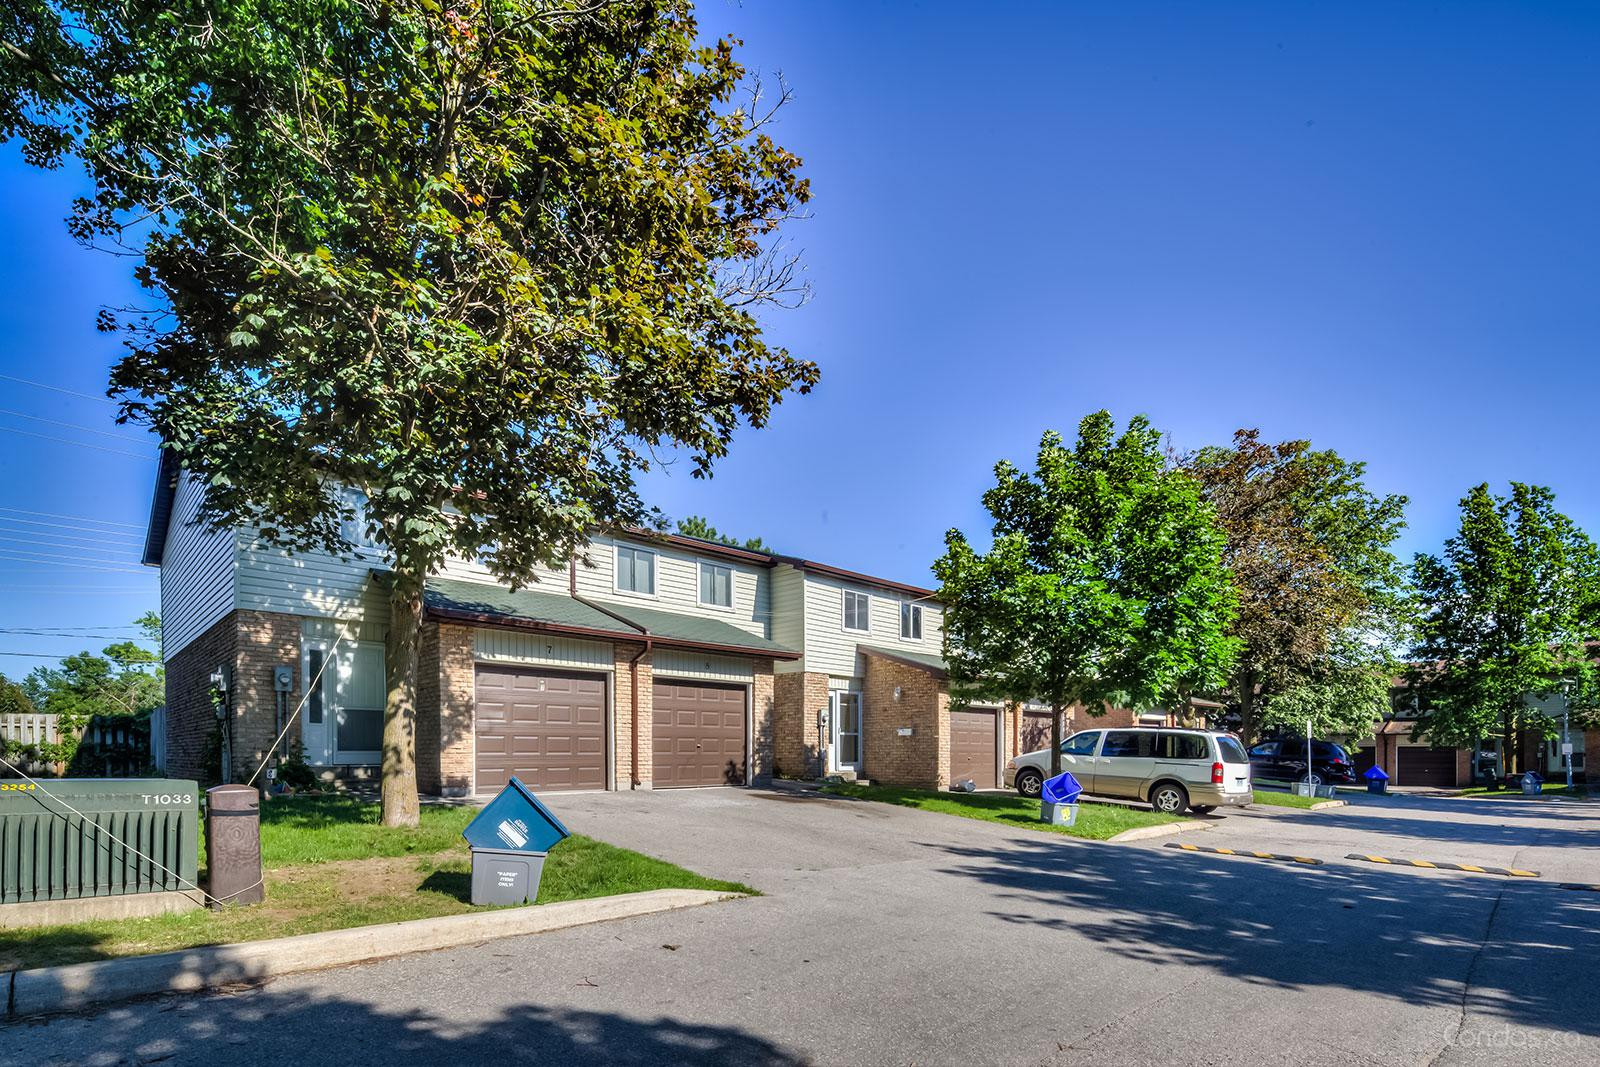 261 Rose Condos at 261 Rose St, Barrie 1